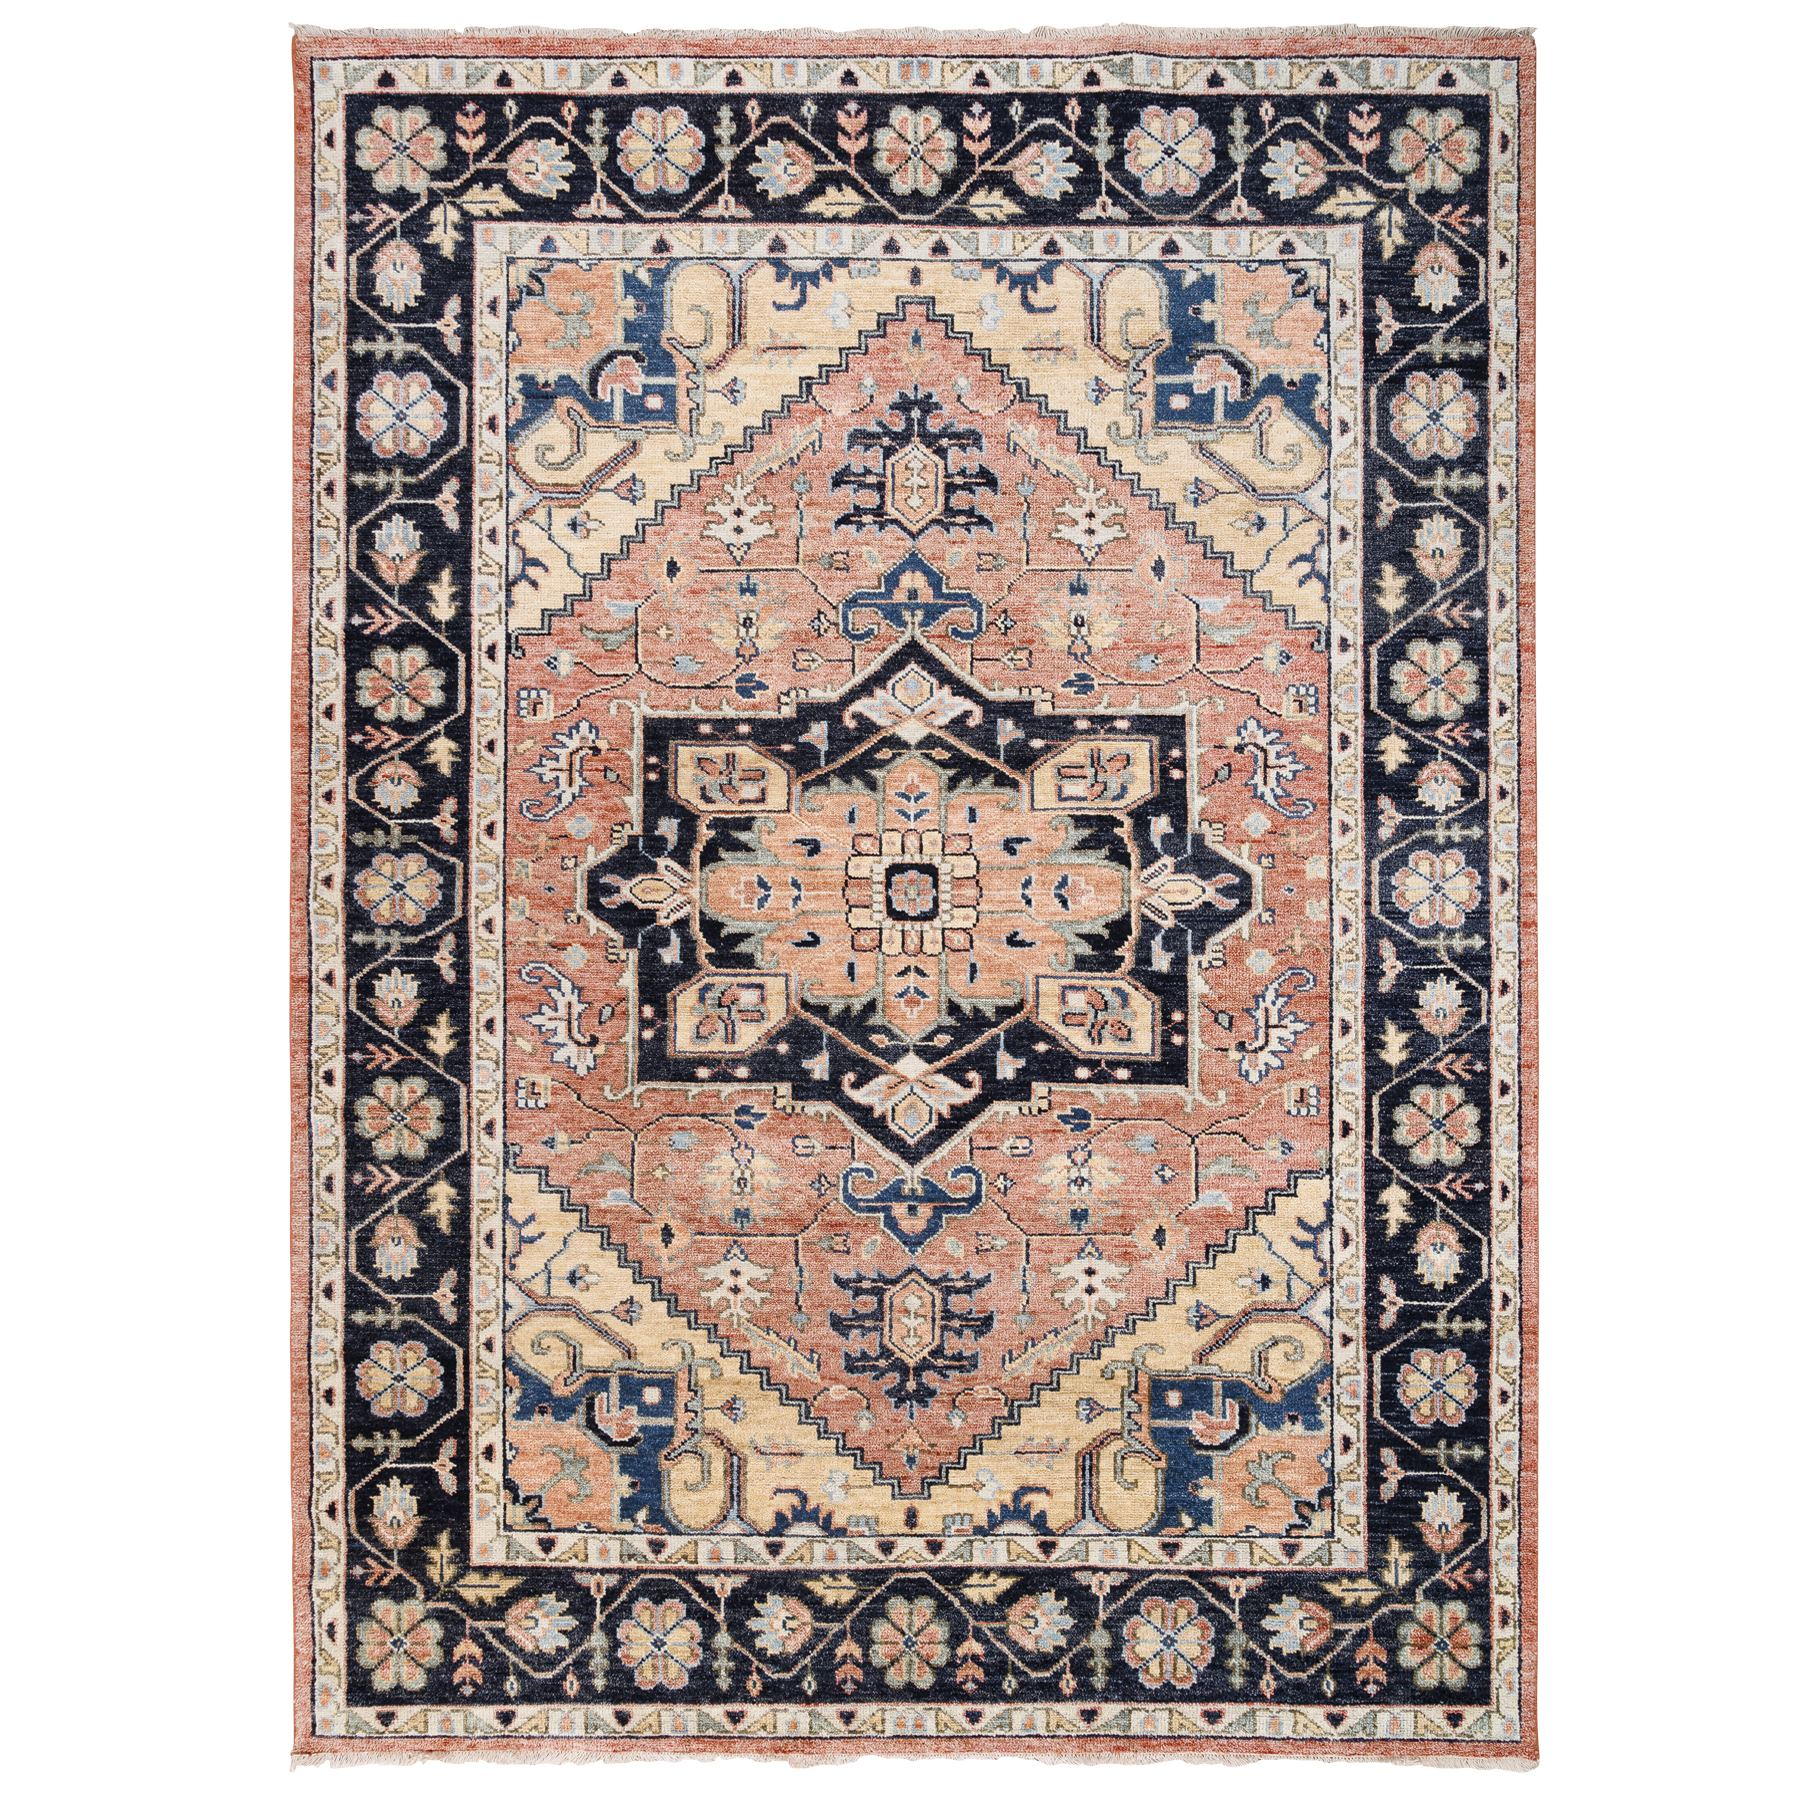 Tribal & Geometric Rugs LUV559746